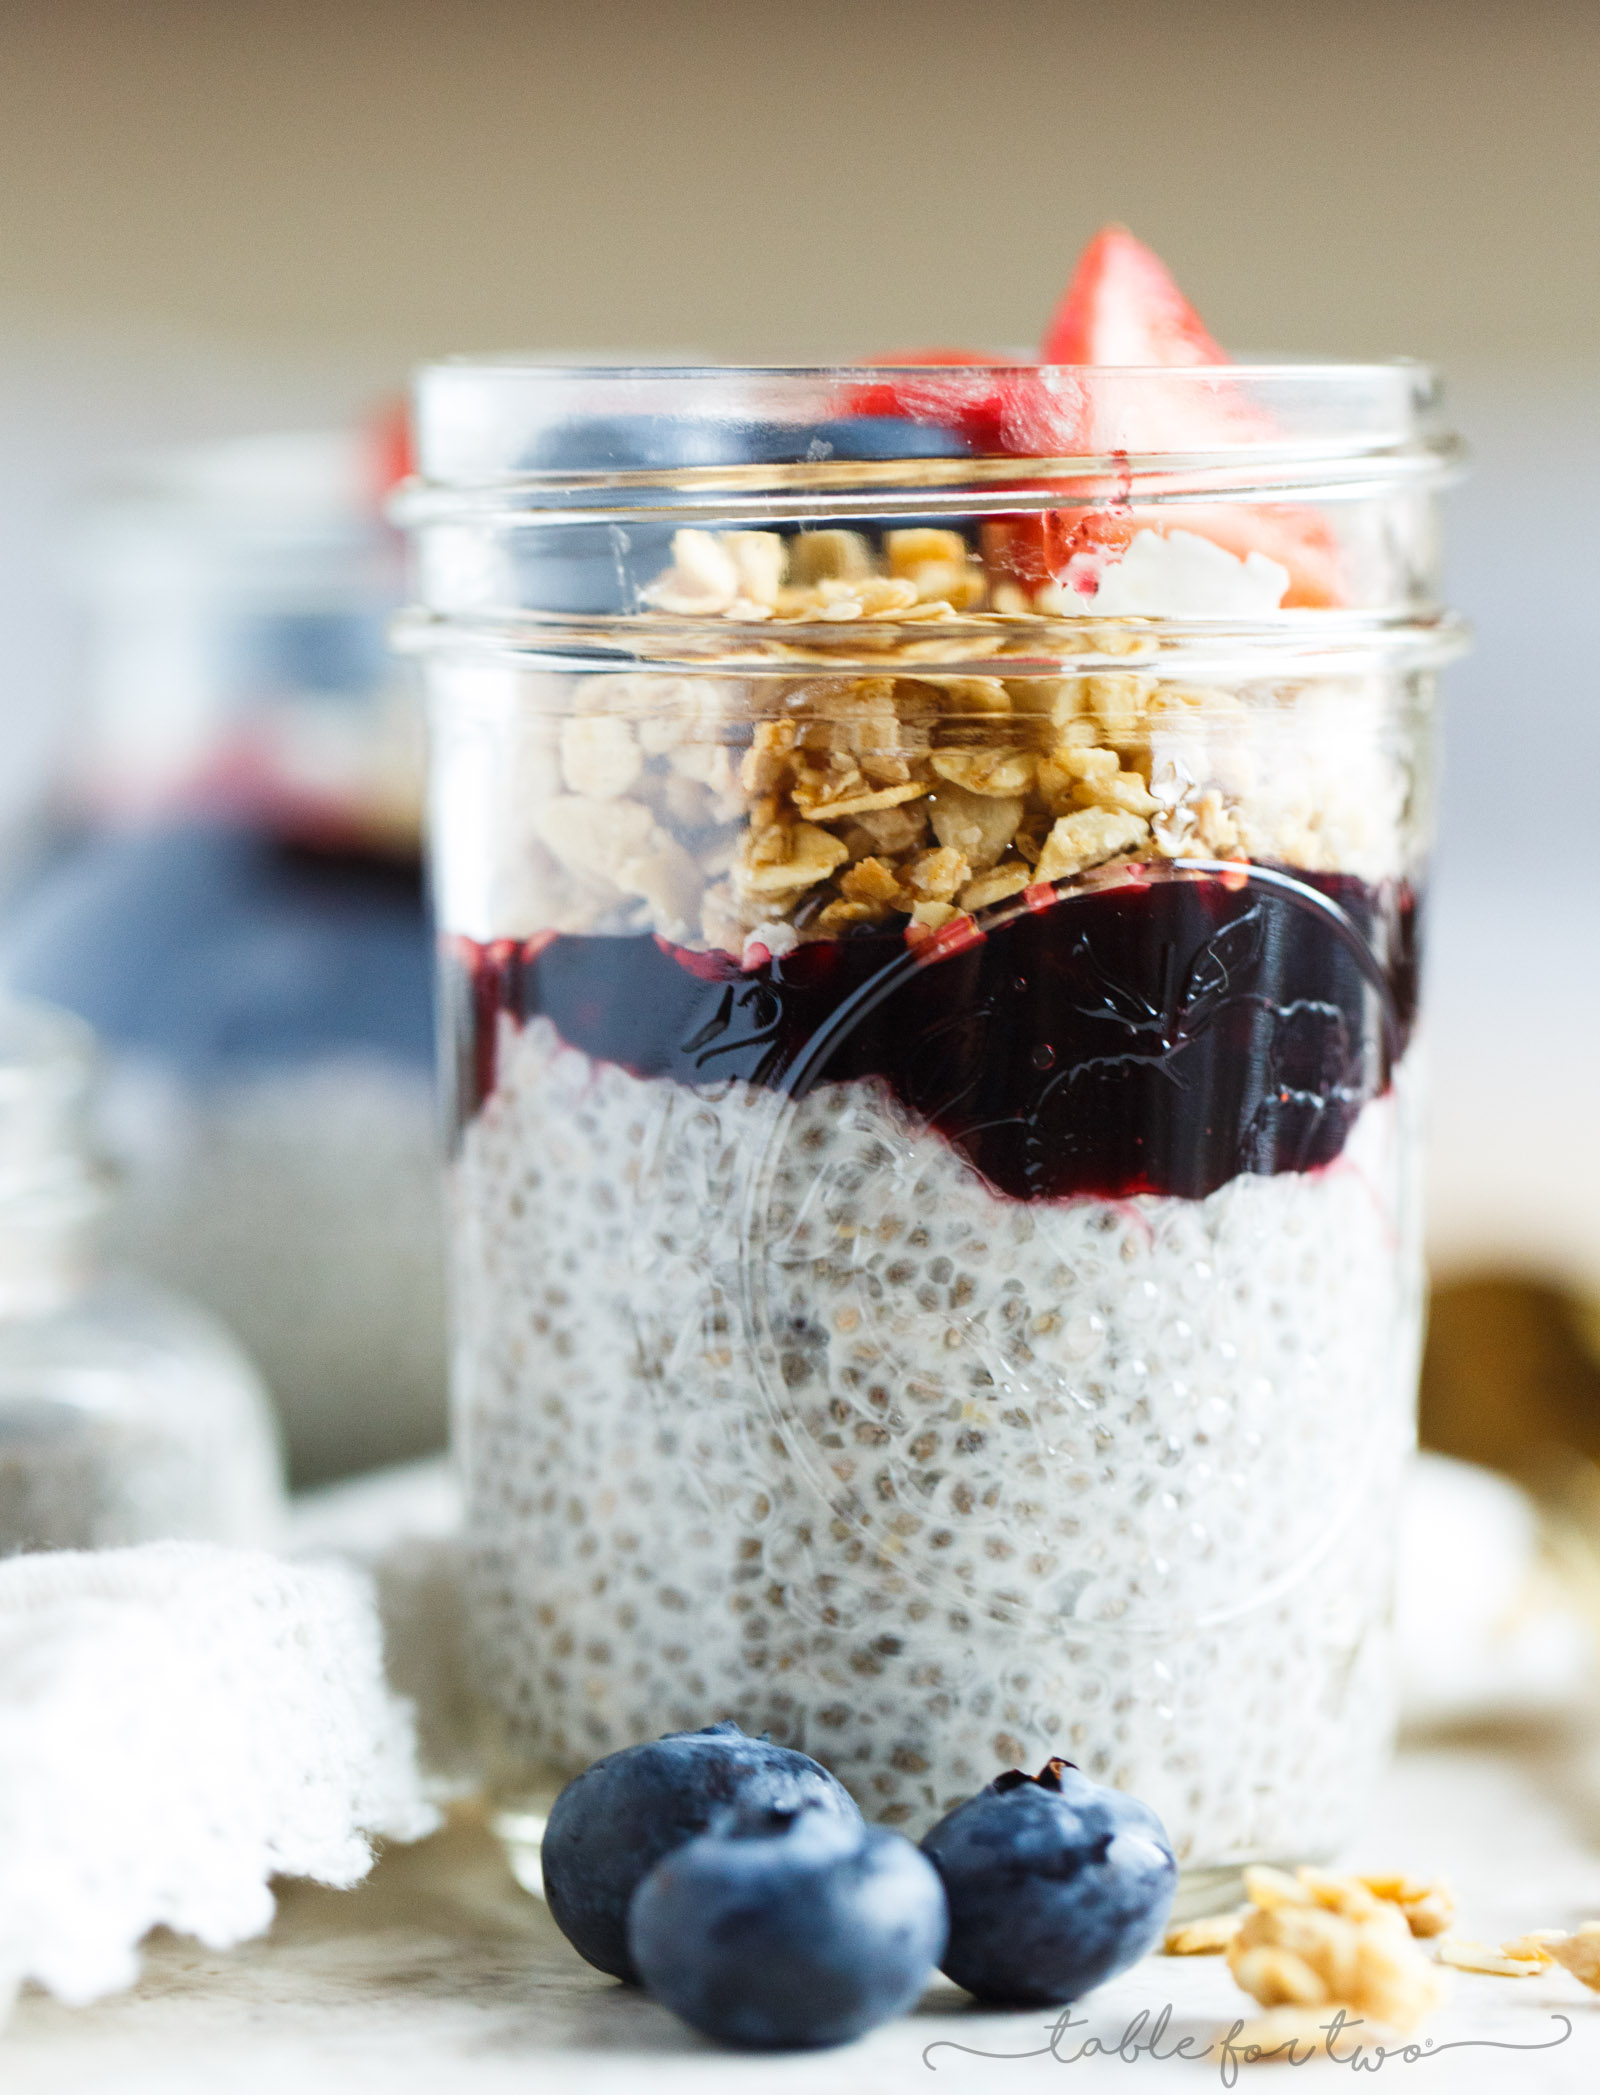 Coconut chia seed pudding with berries and granola is an easy breakfast option packed with flavor and nutrients! It's loaded with fiber, protein, Omega-3 fatty acids and various micronutrients!